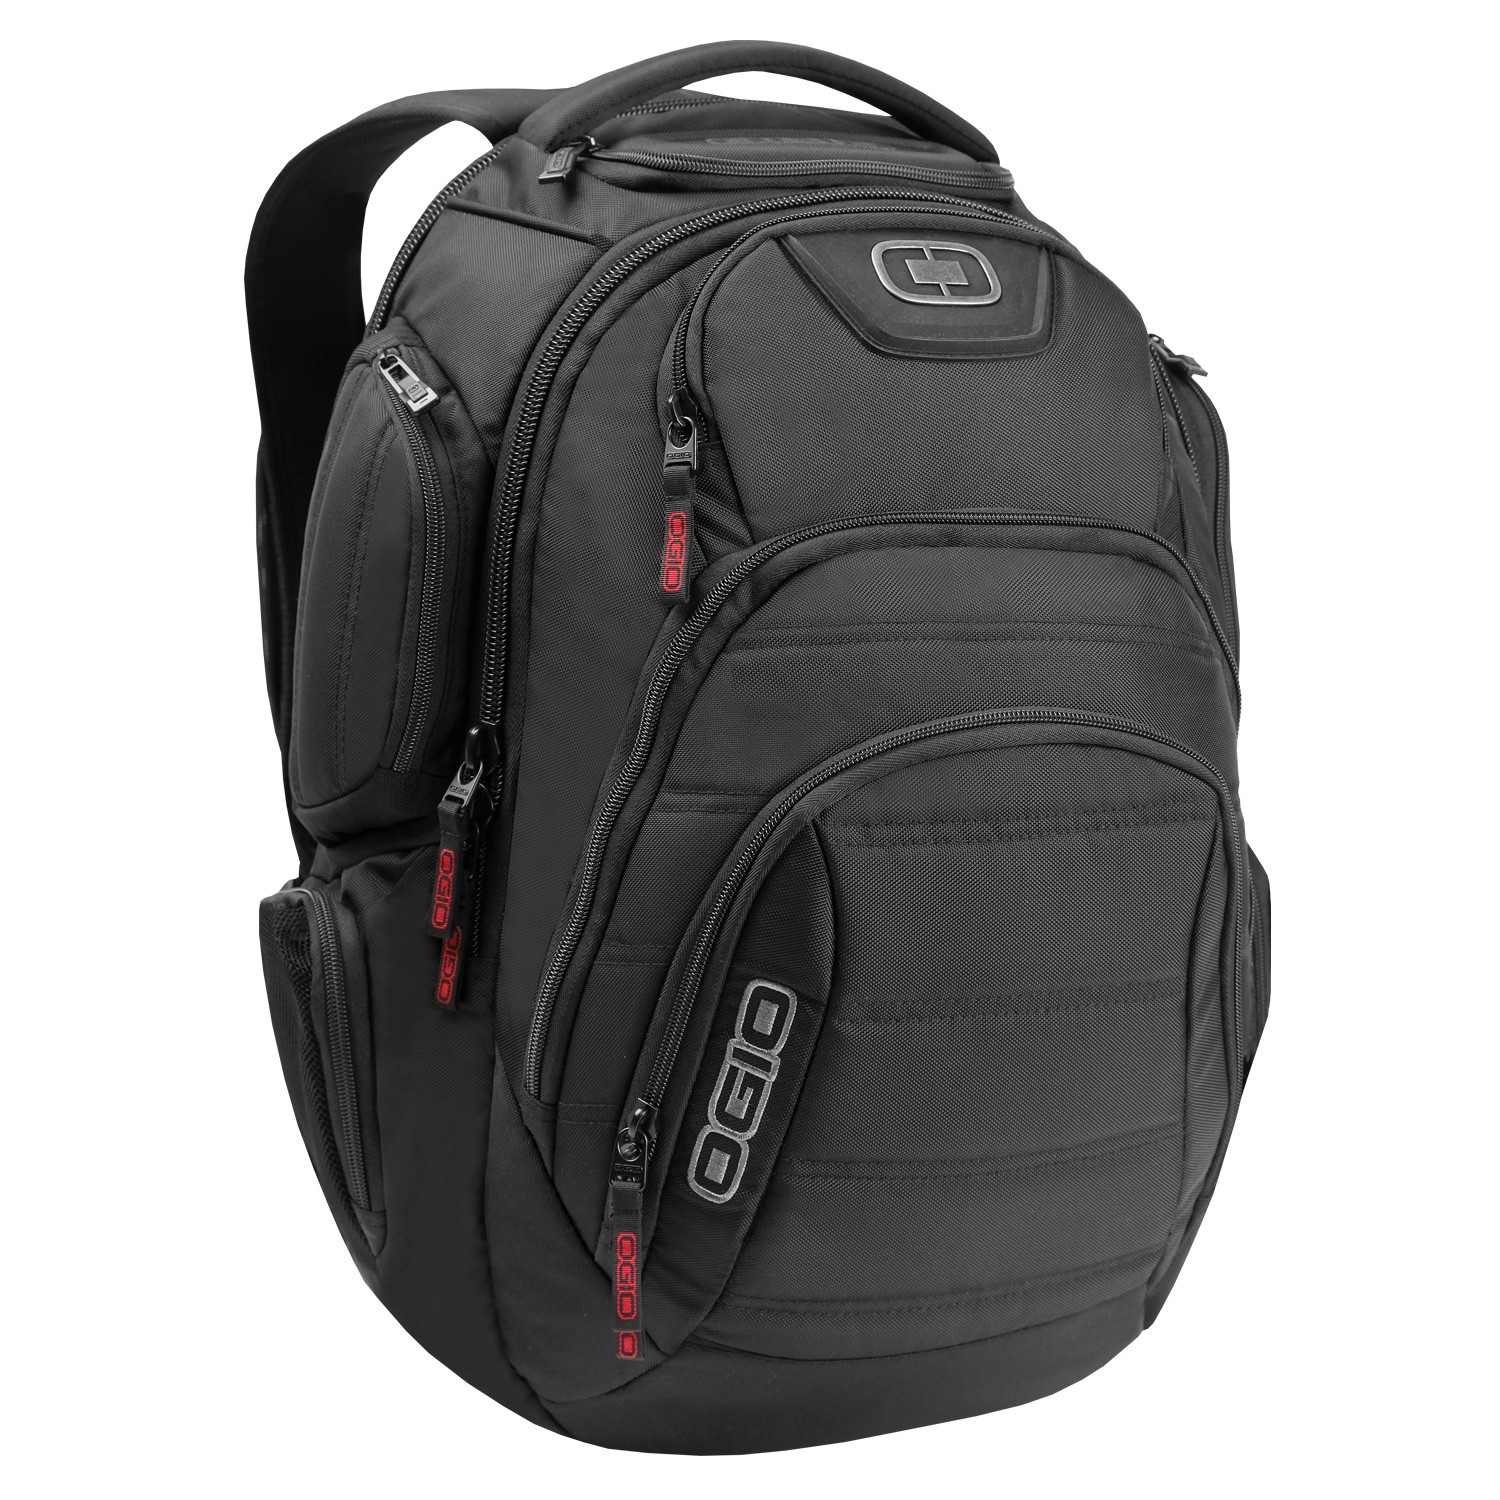 Ogio Renegade Rss Backpack xAc3I1cT